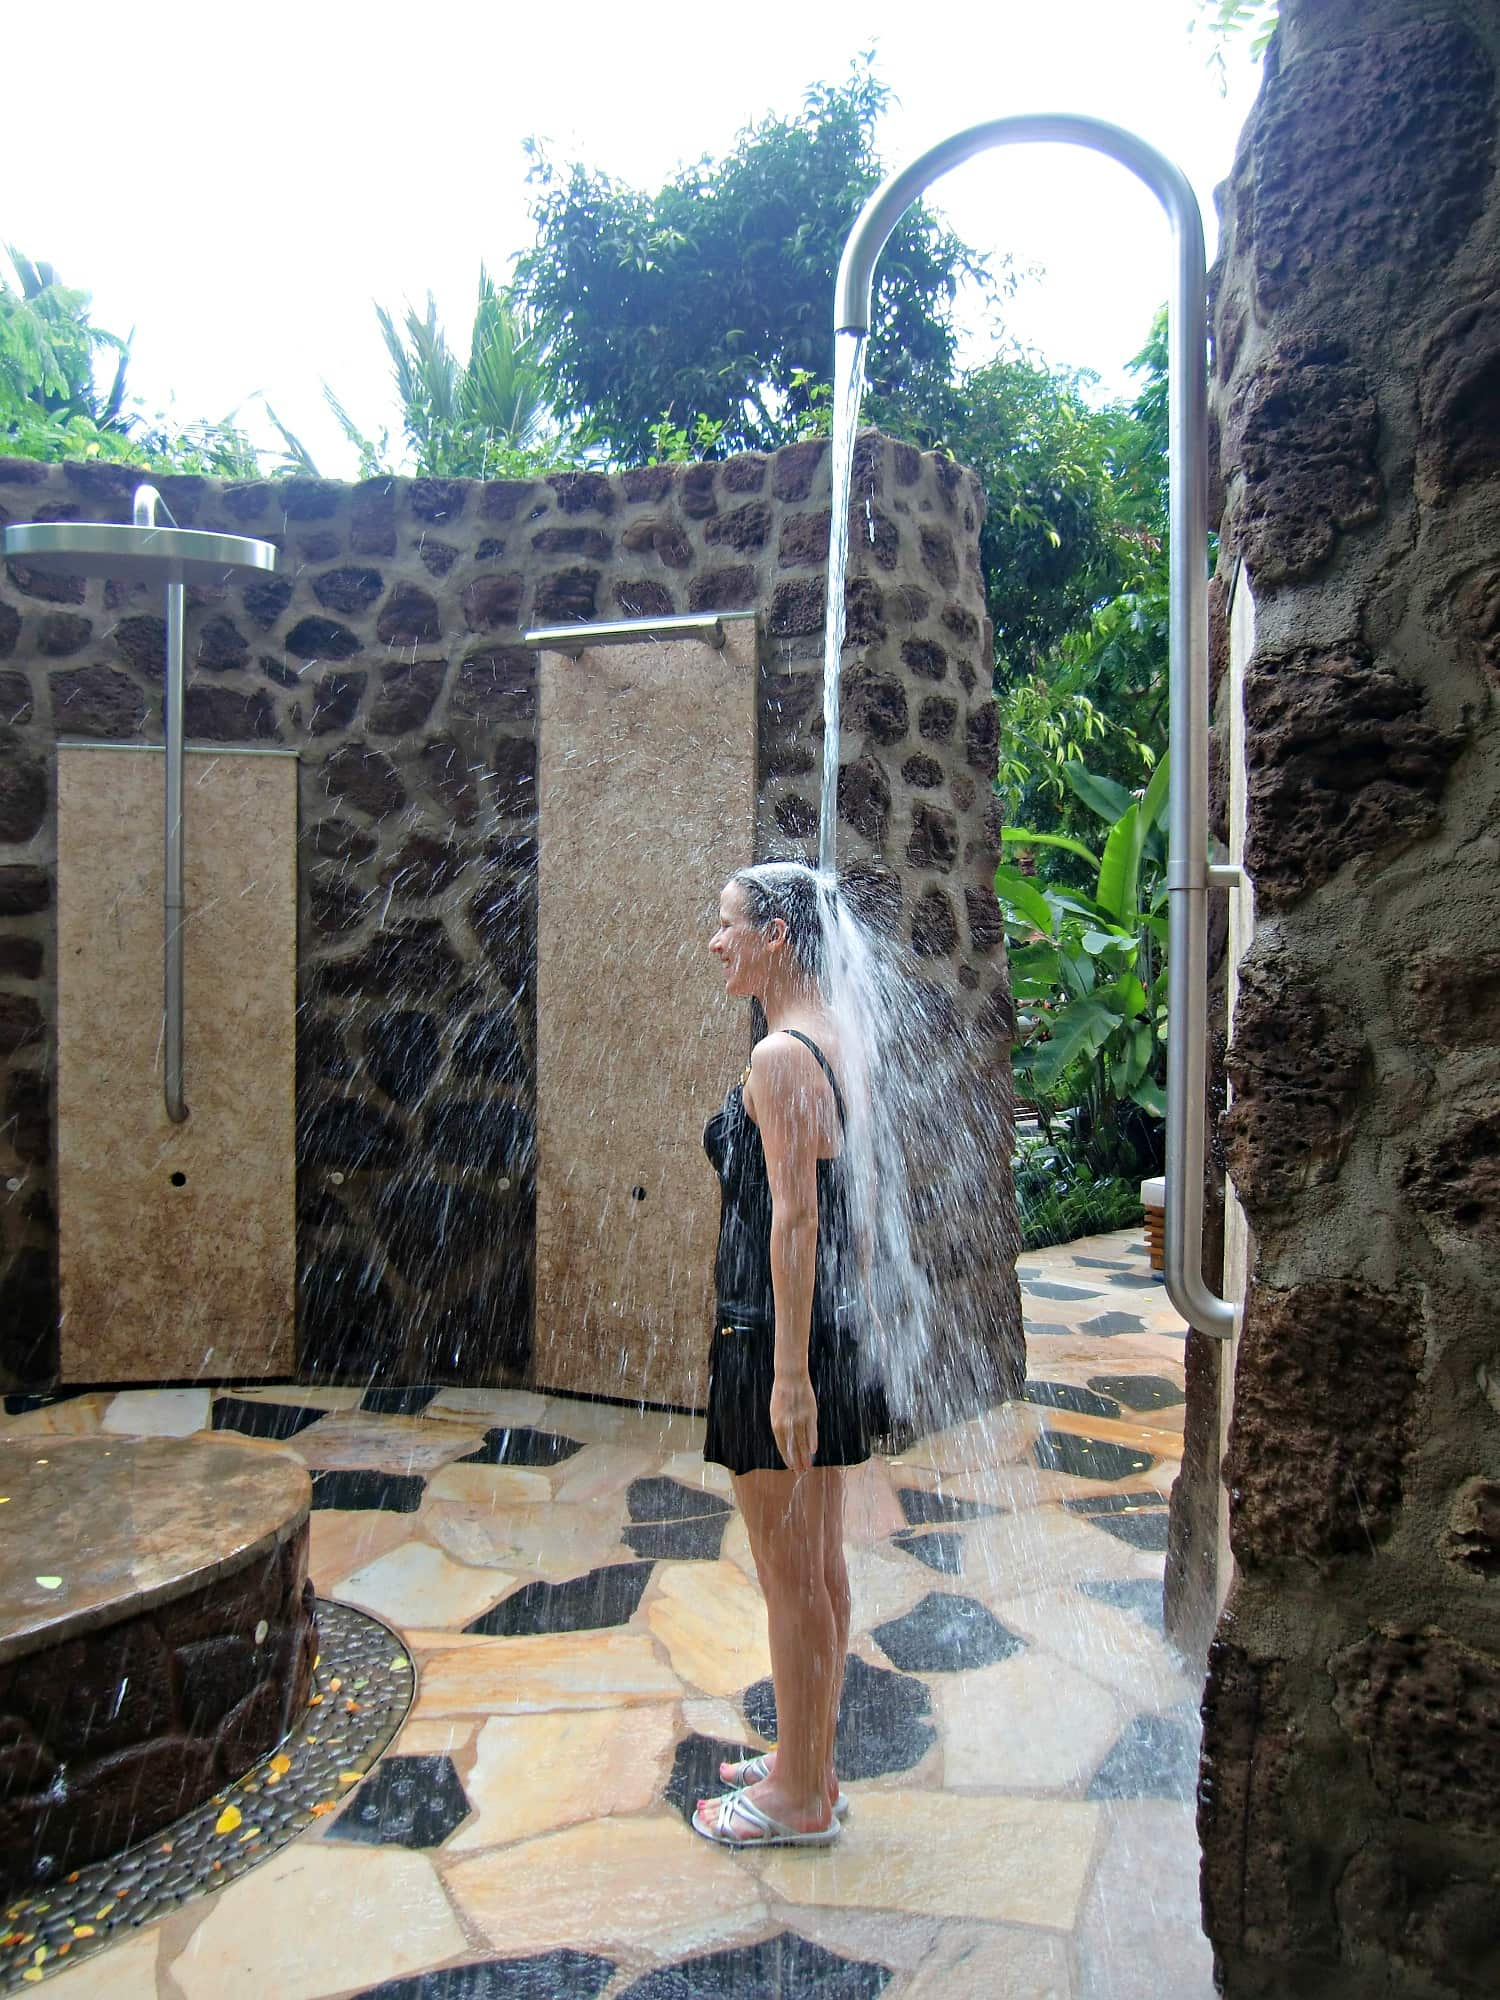 A rain shower in Kula Wai Hydrotherapy Garden at Laniwai Spa